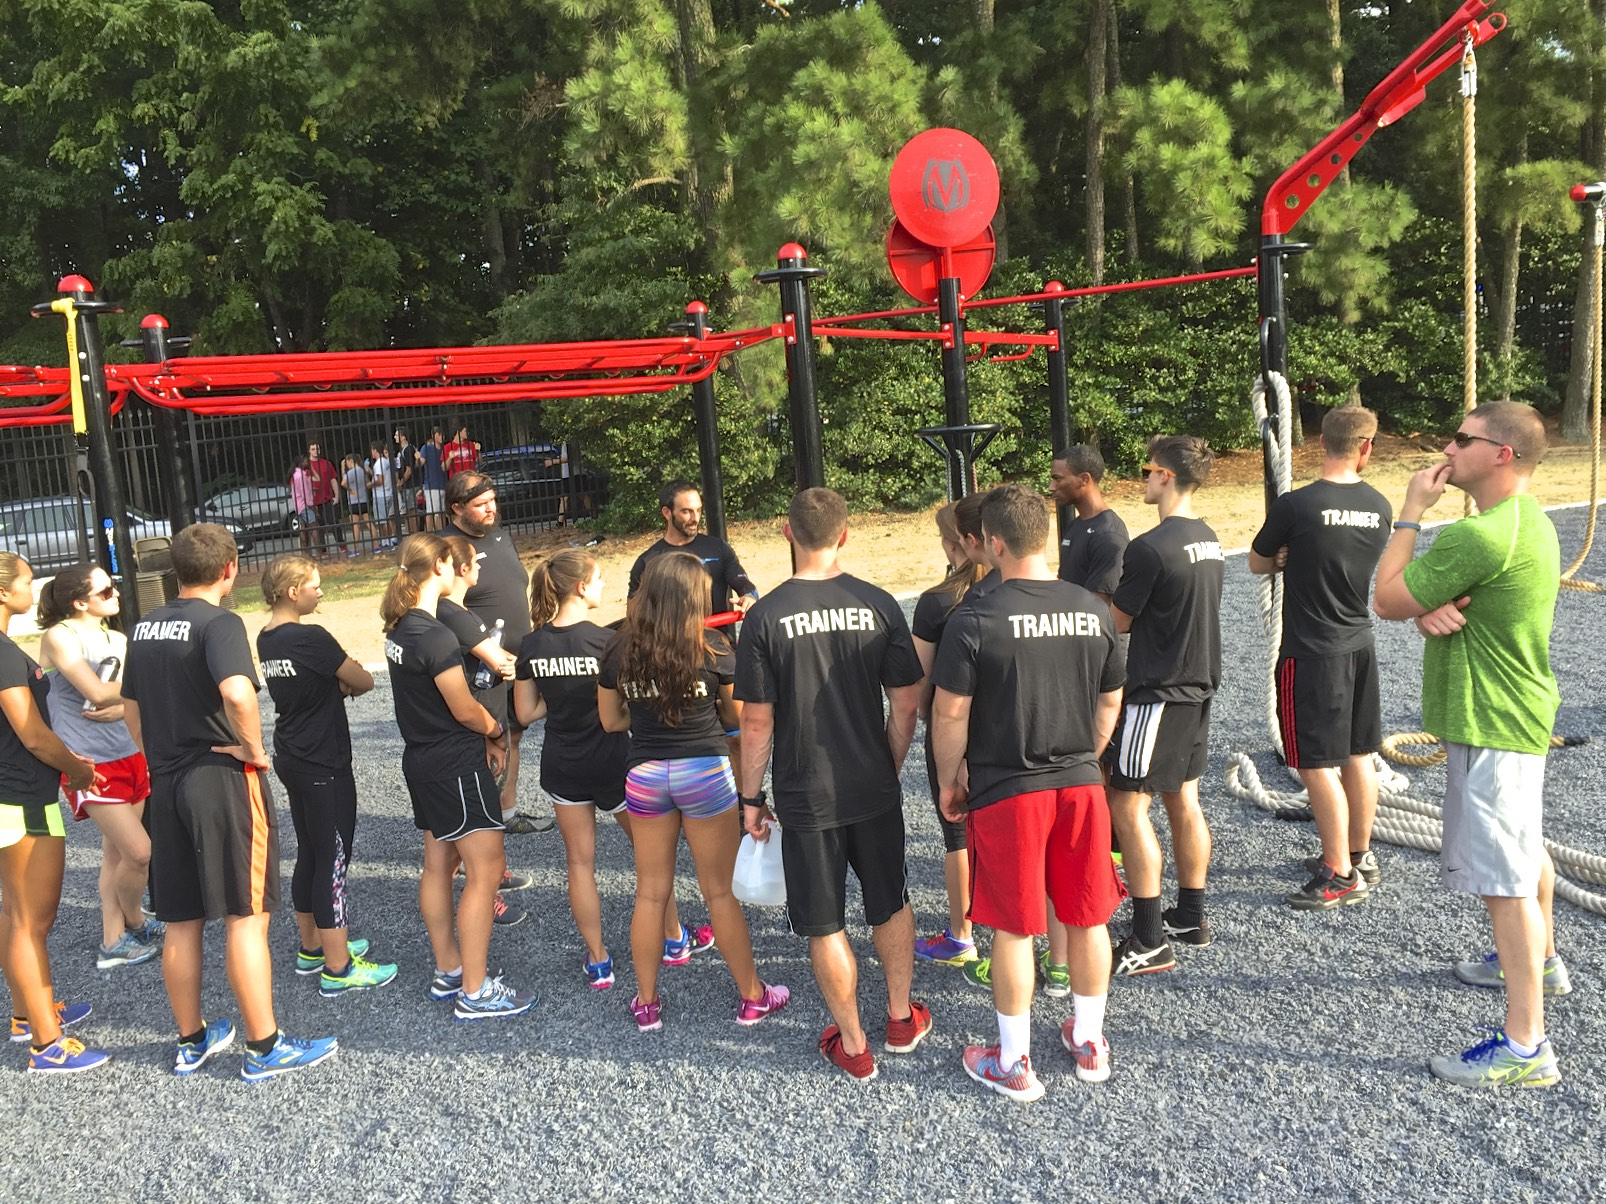 Student Trainers at NC State fit ground